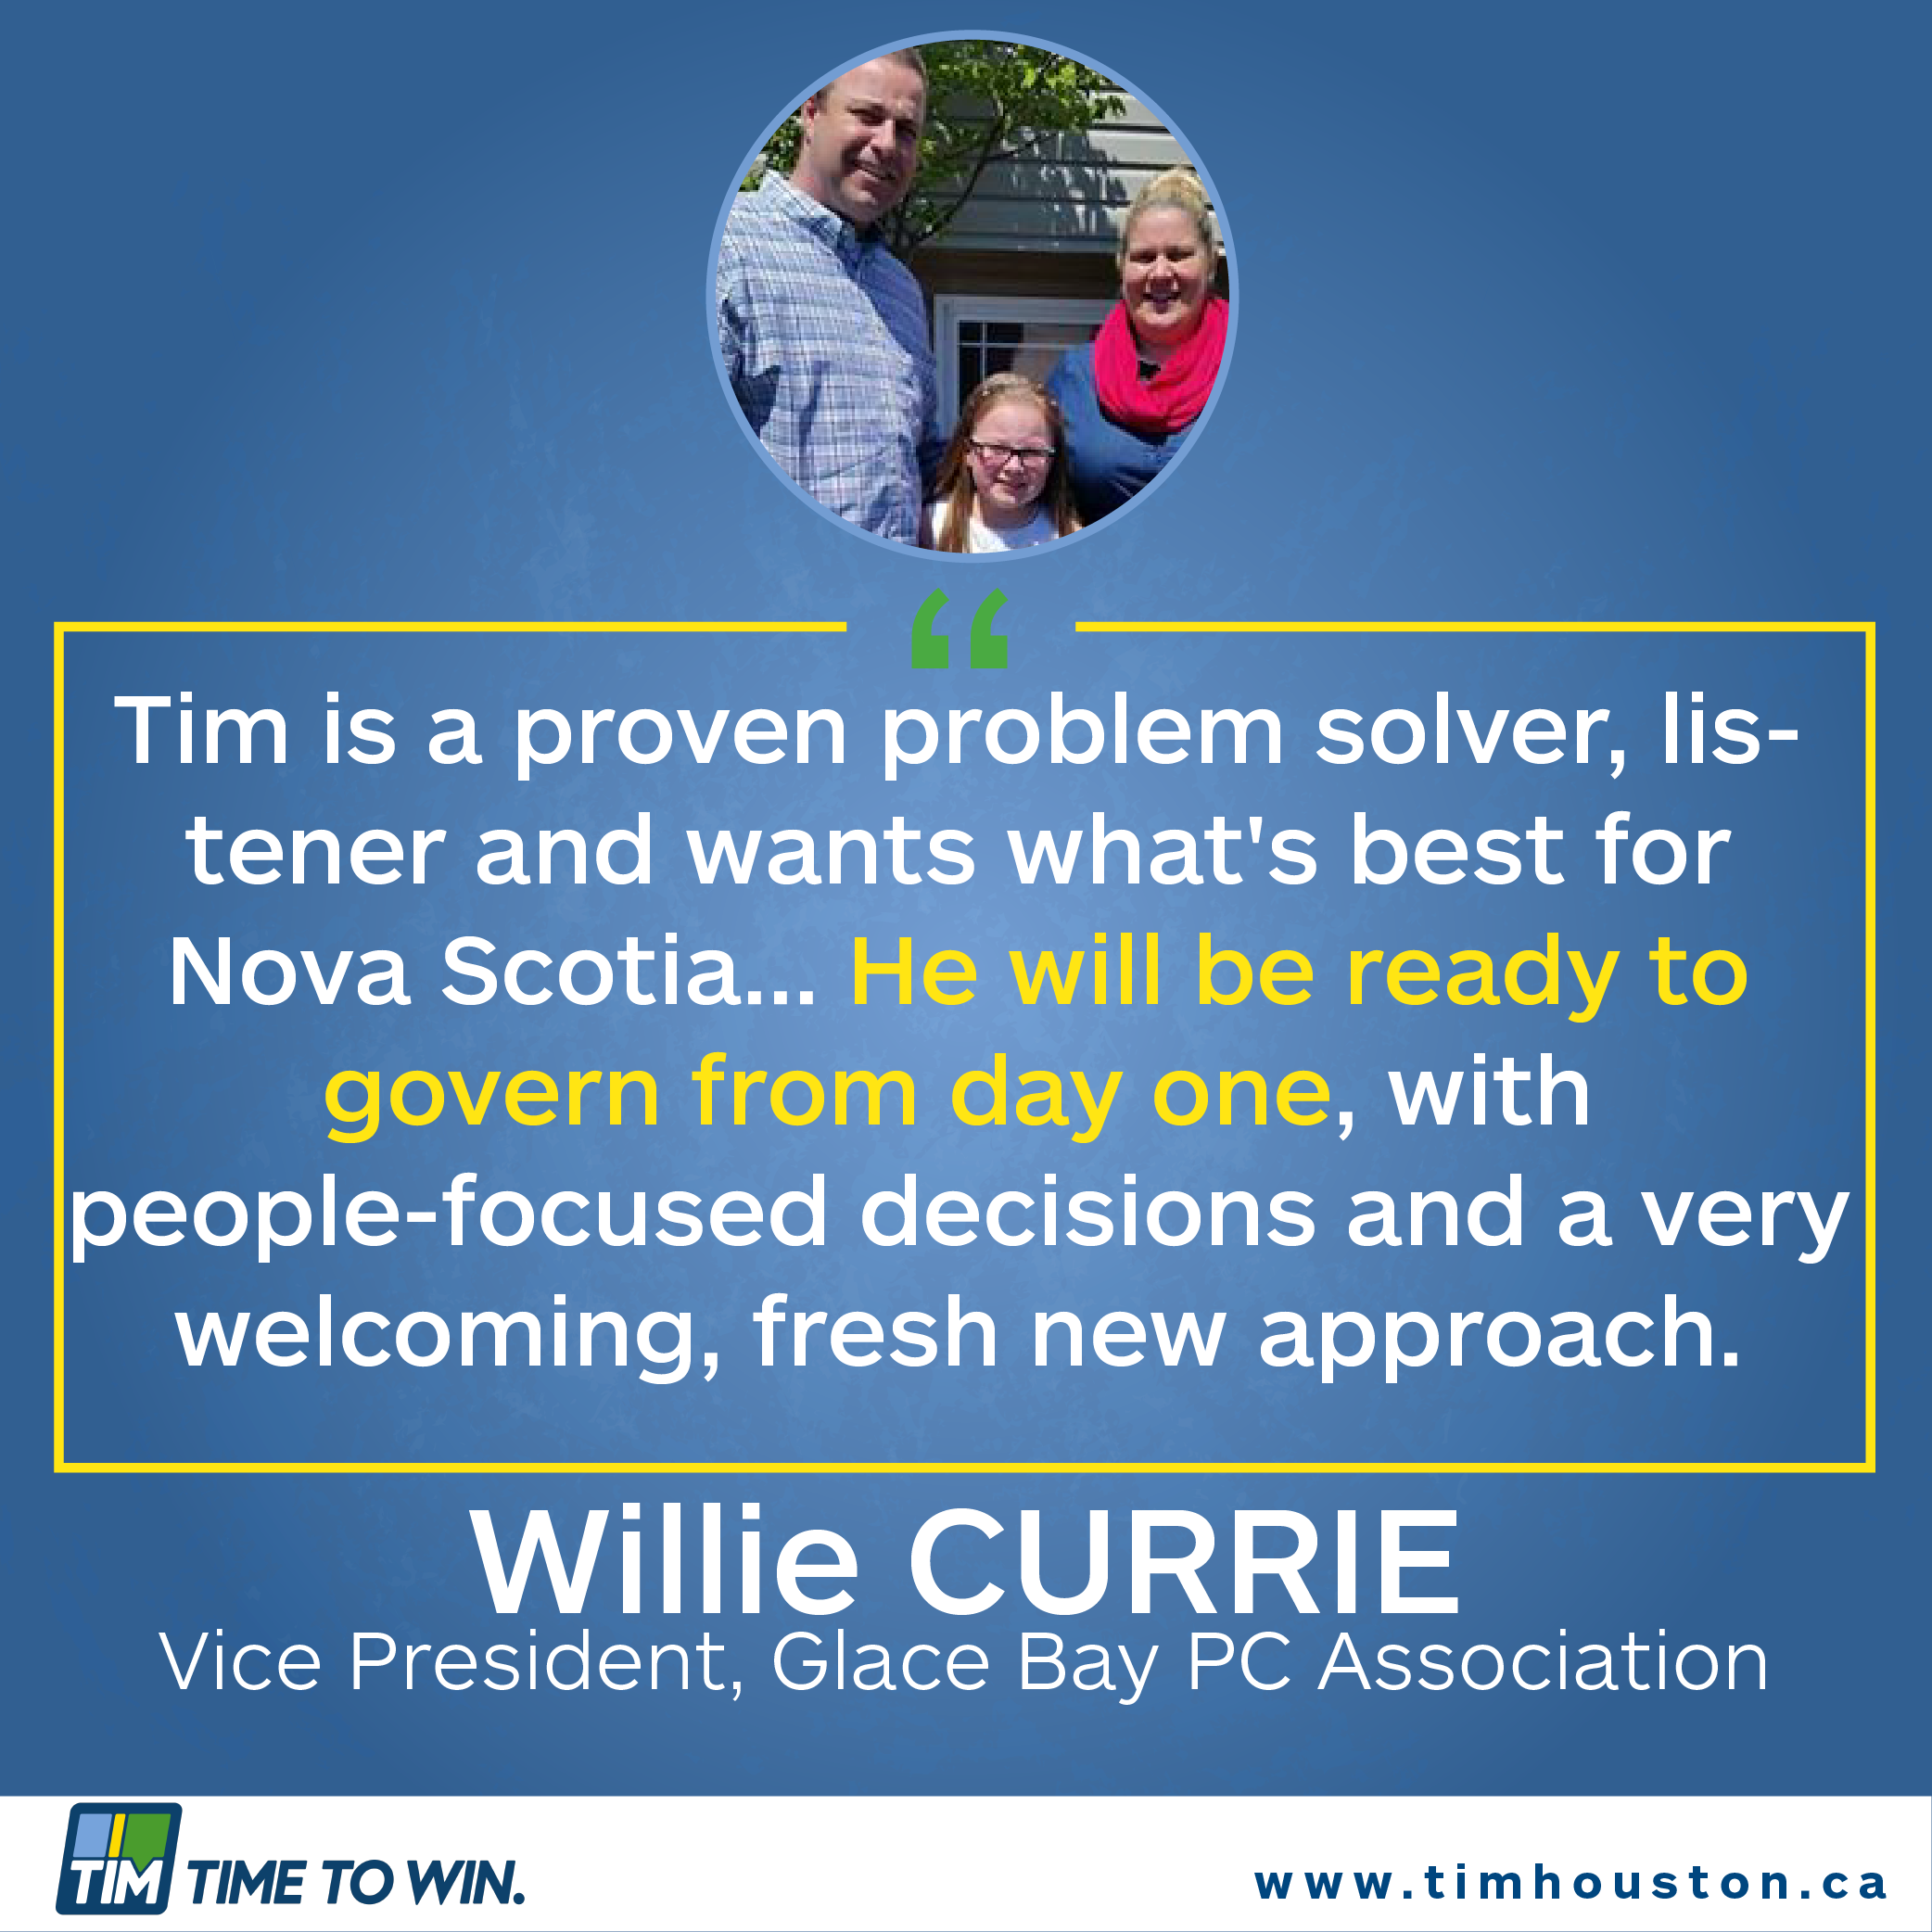 willie_currie_Tim_Houston_1-01-01.png